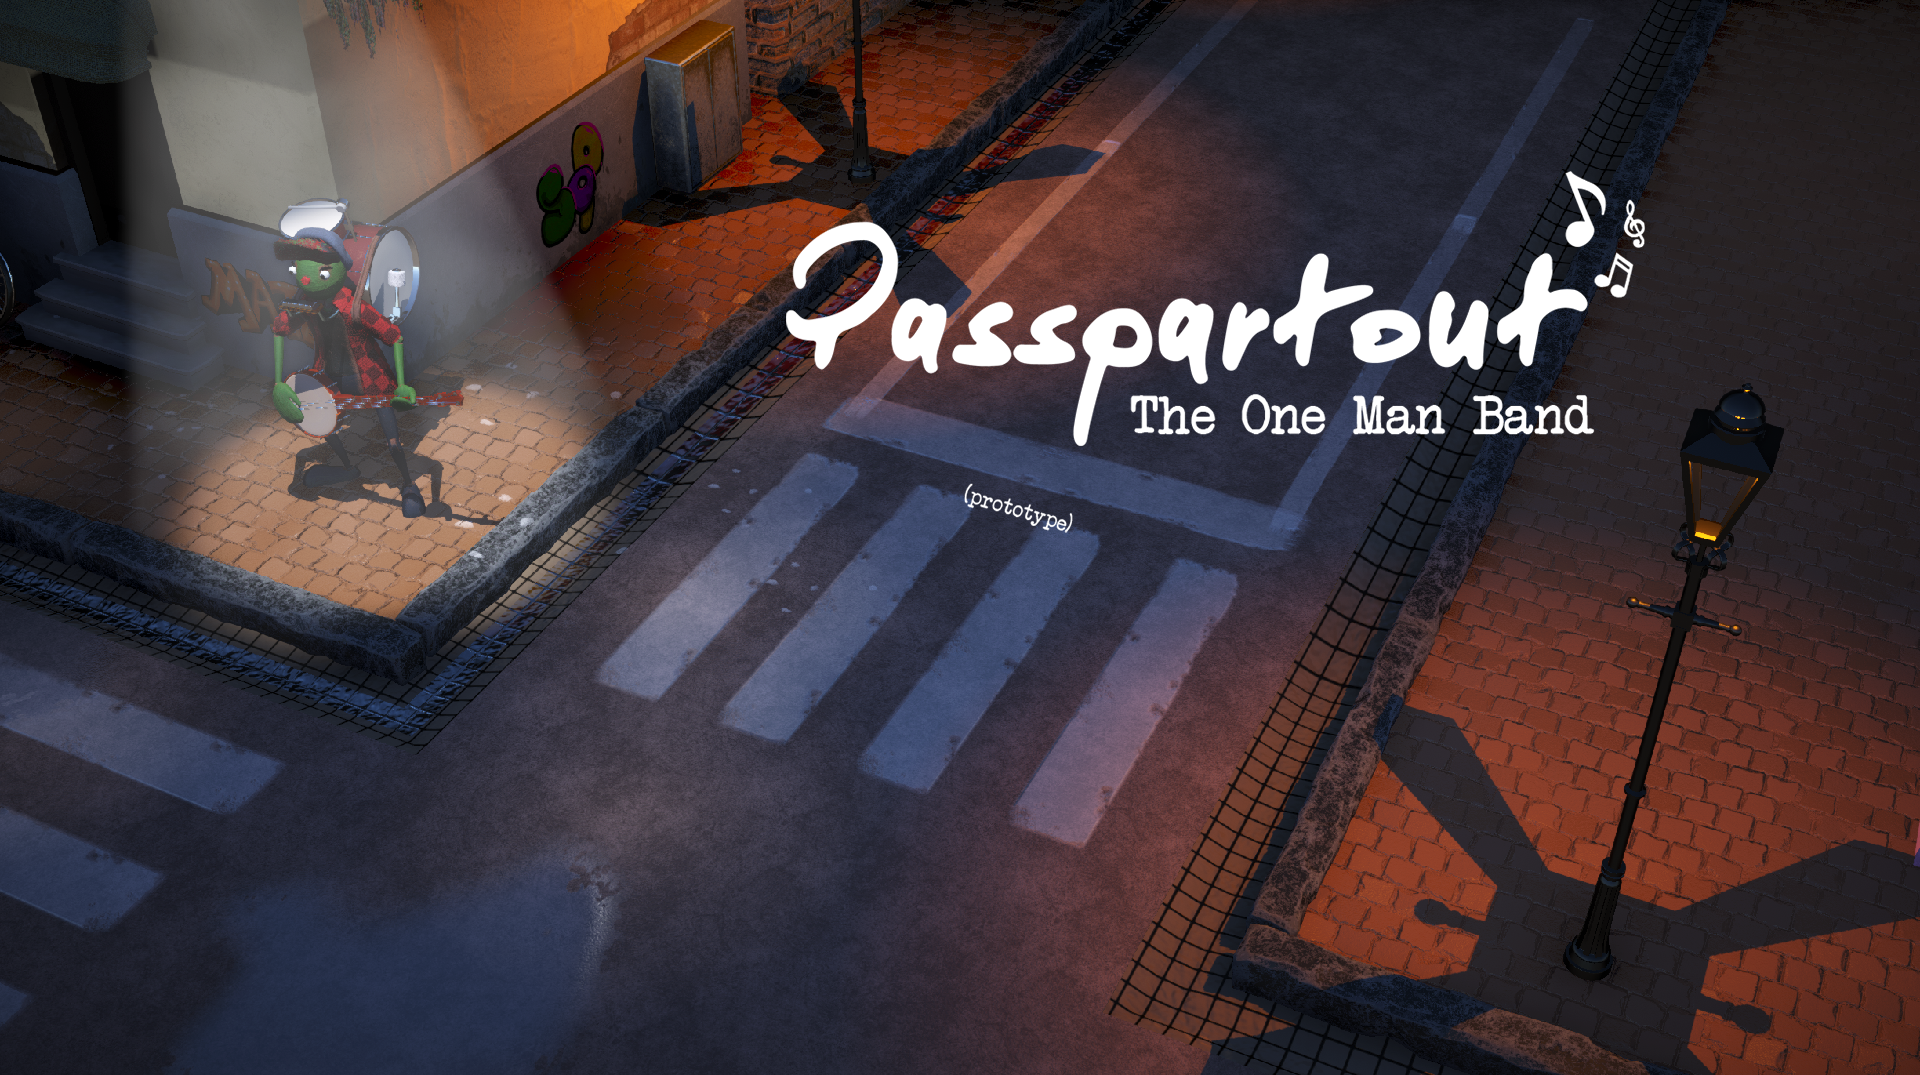 Passpartout - The One Man Band